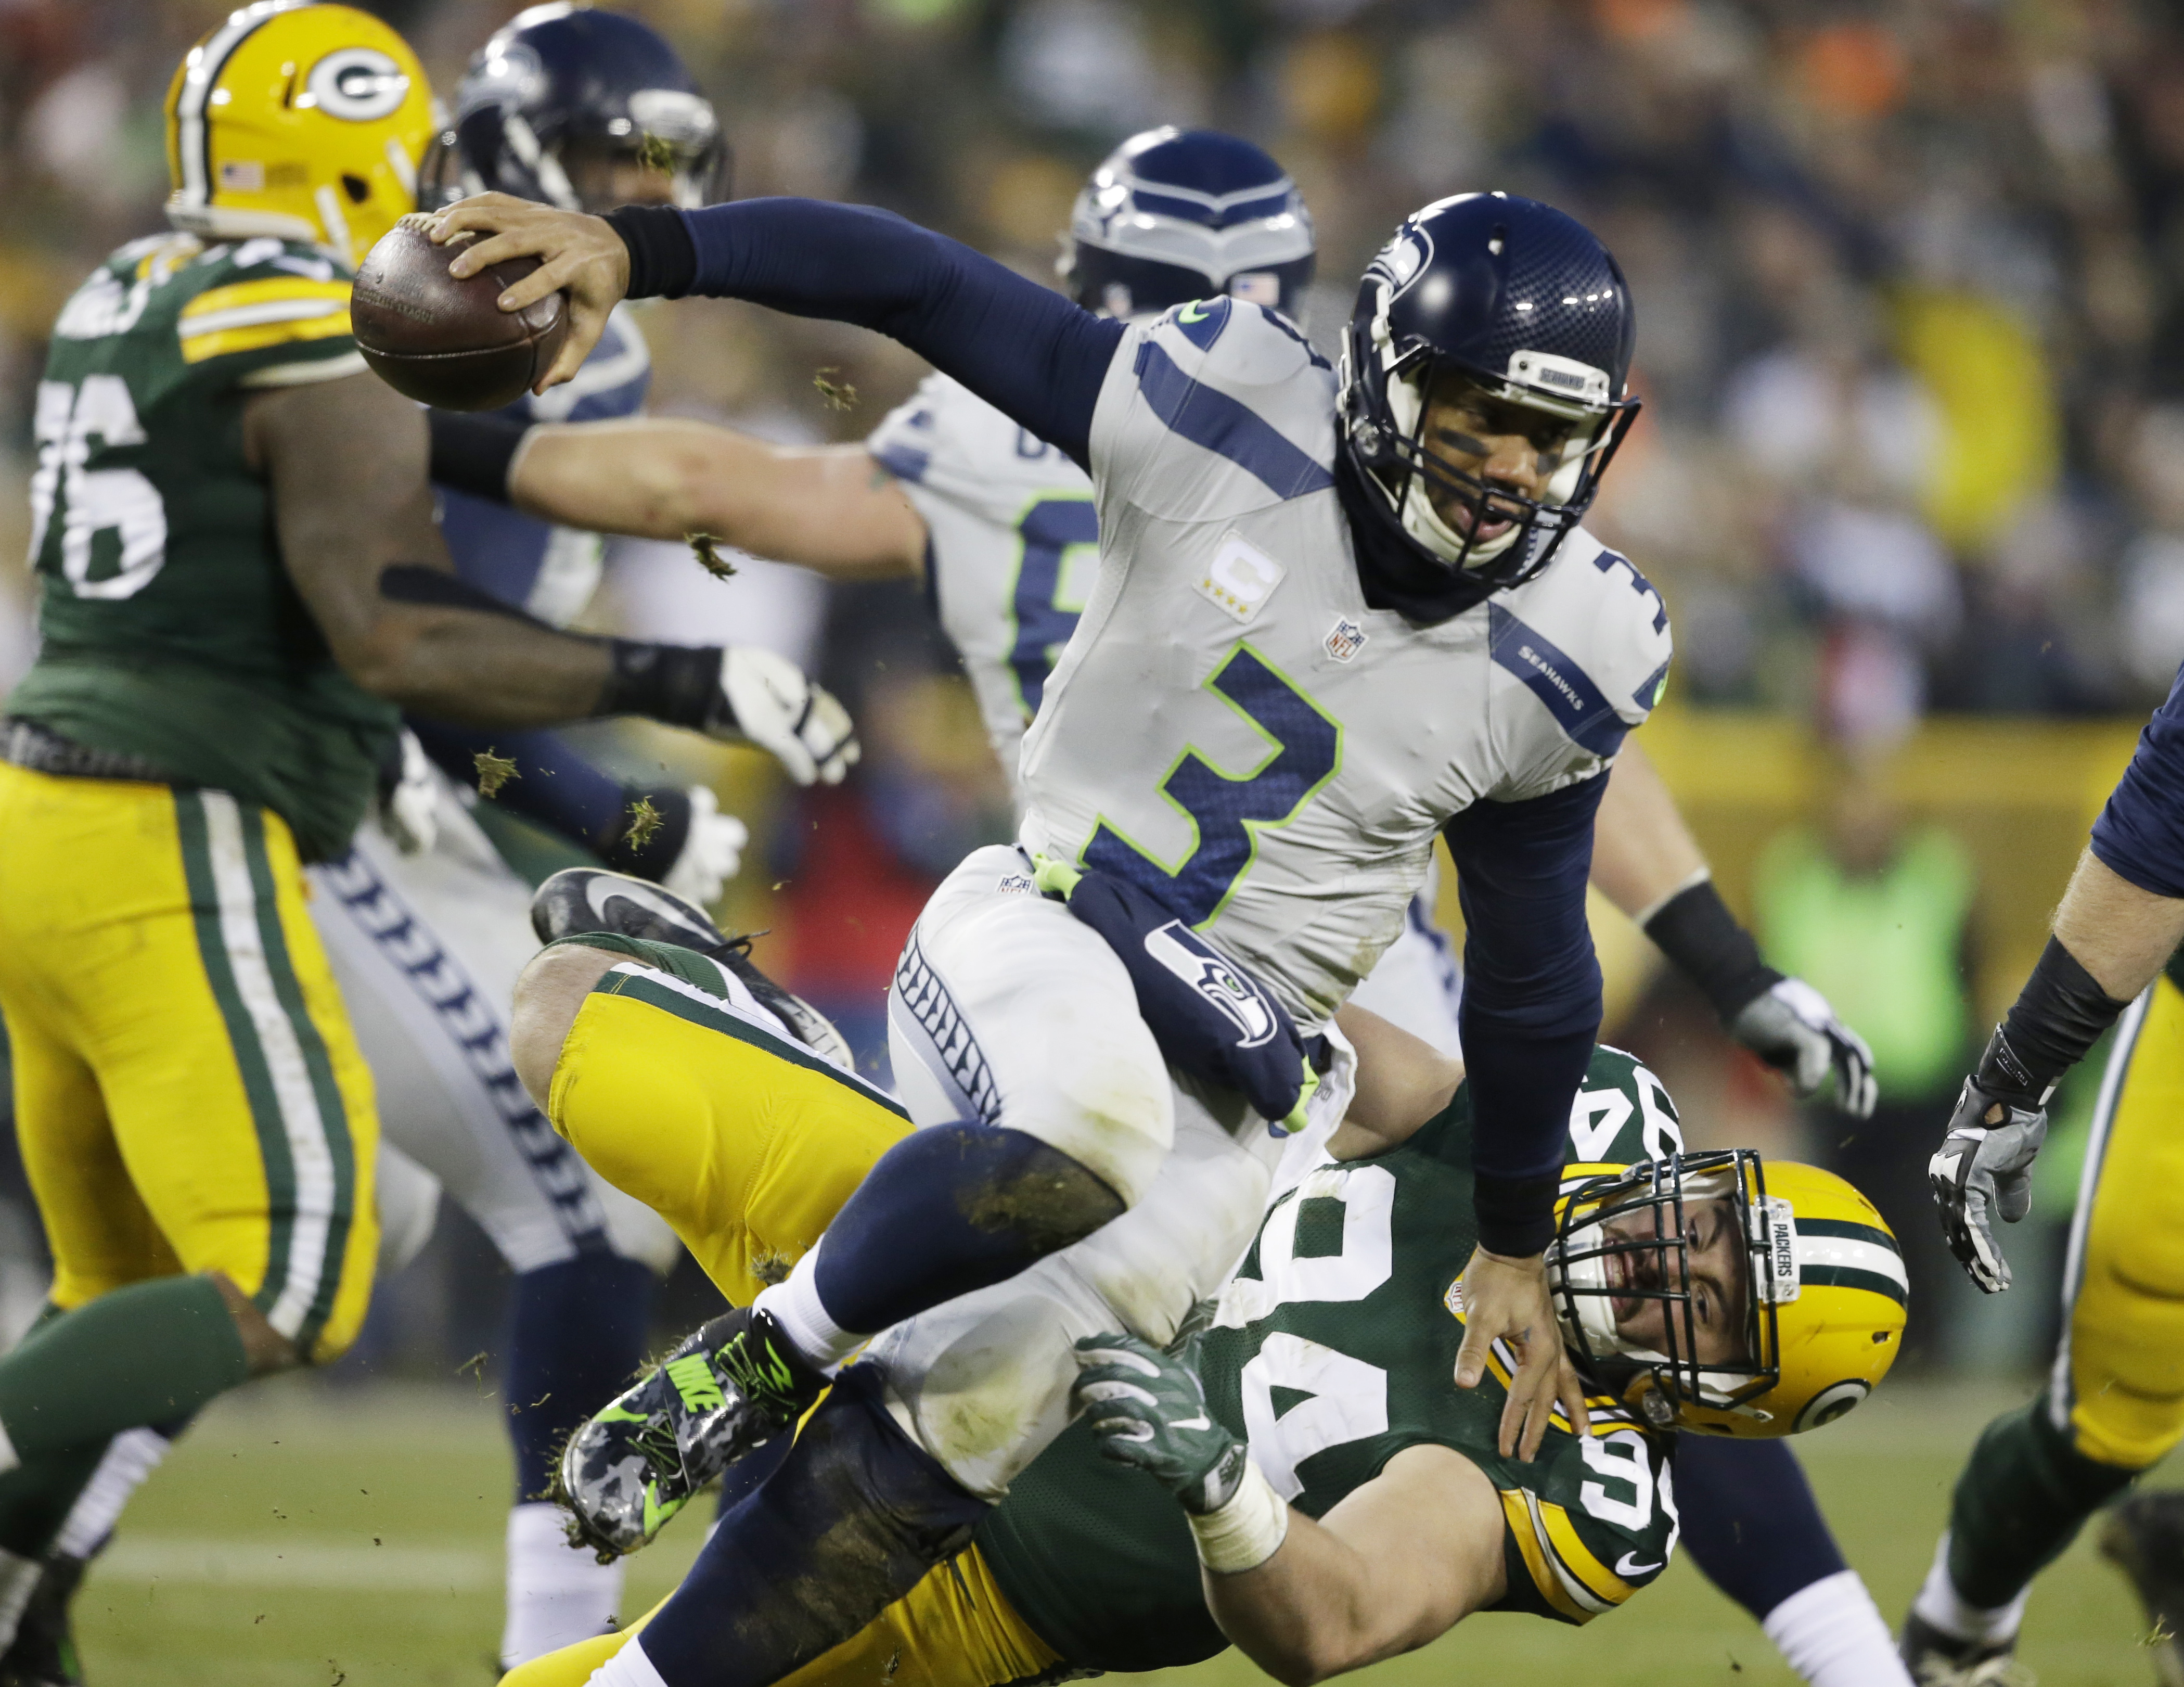 Pack is back: Aaron Rodgers, Green Bay rout Seahawks 38-10